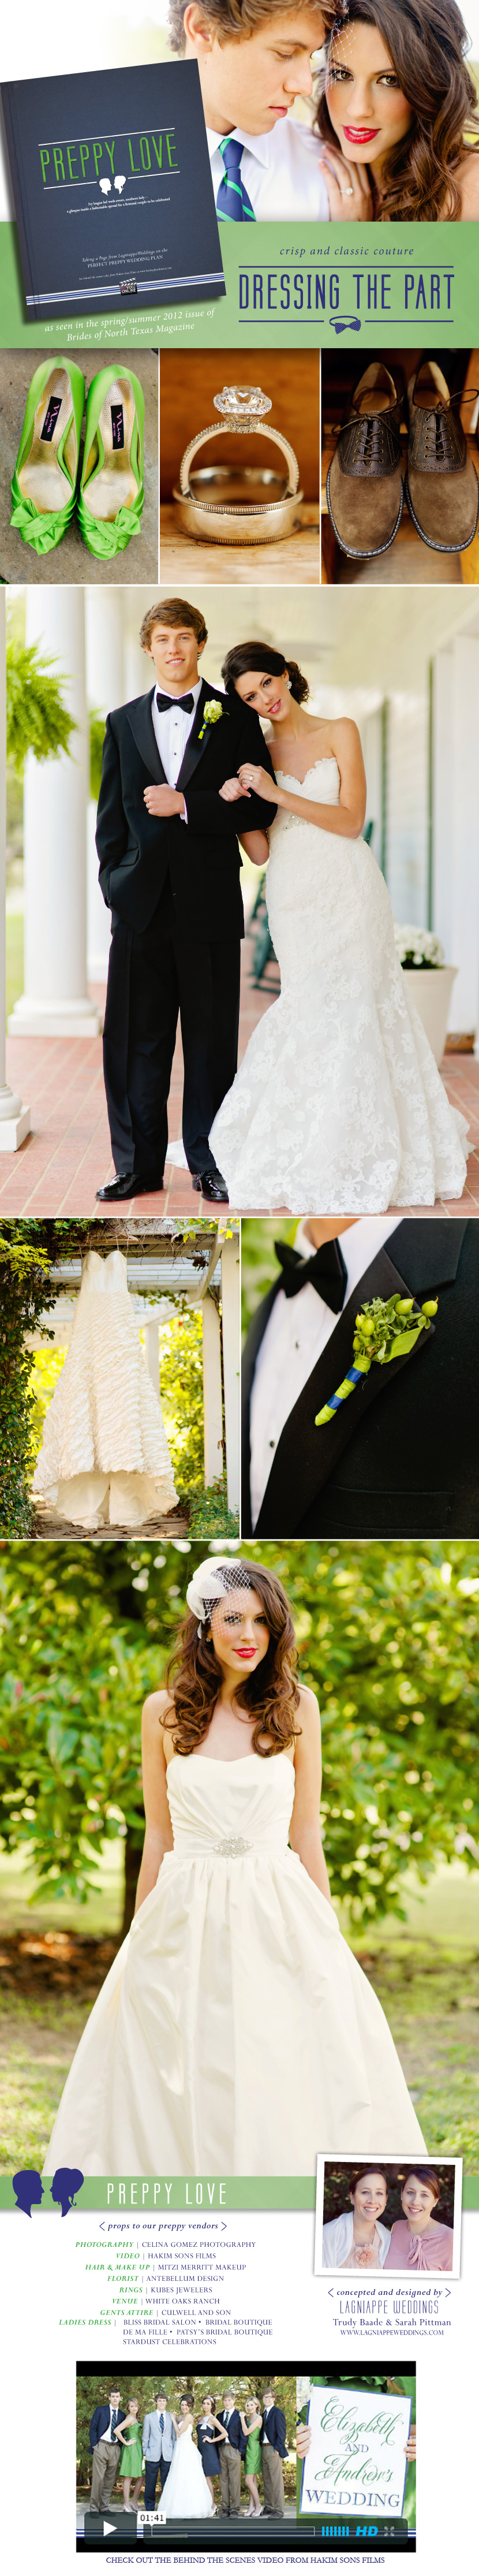 Preppy love Texas wedding gowns and tuxedos